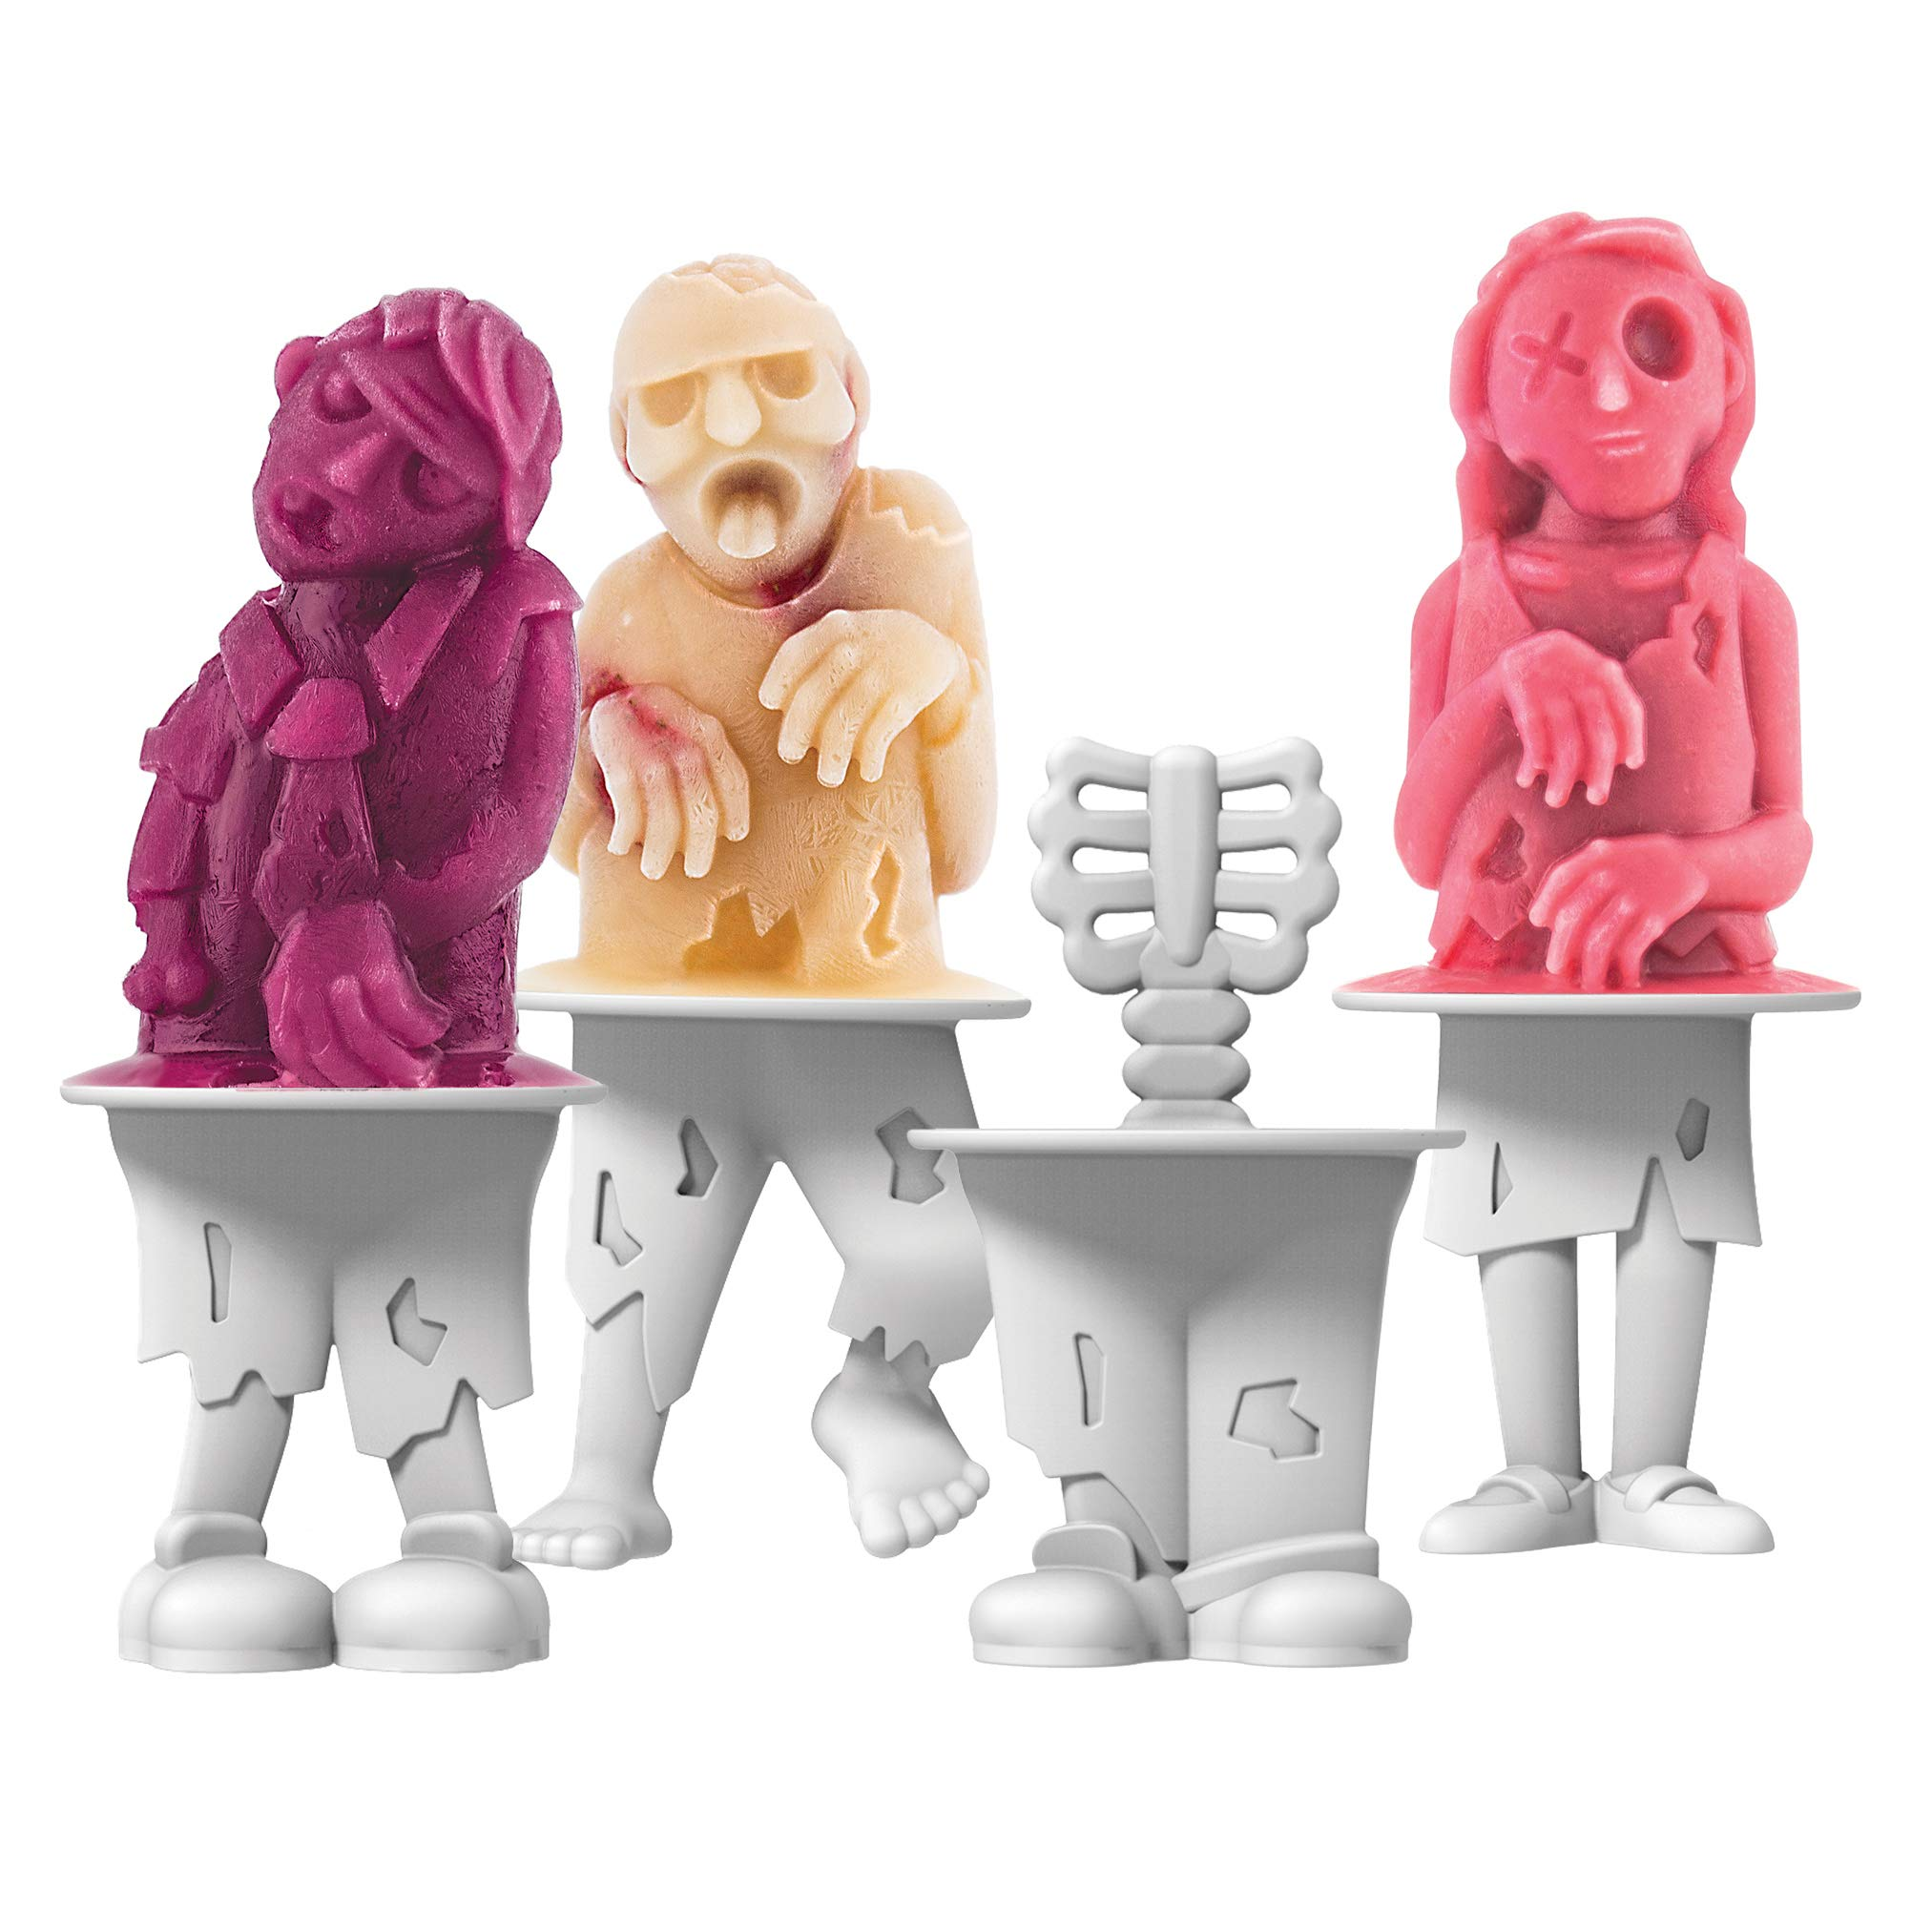 Tovolo Zombies Pop Molds, Flexible Silicone, Easily-Removable, Dishwasher Safe